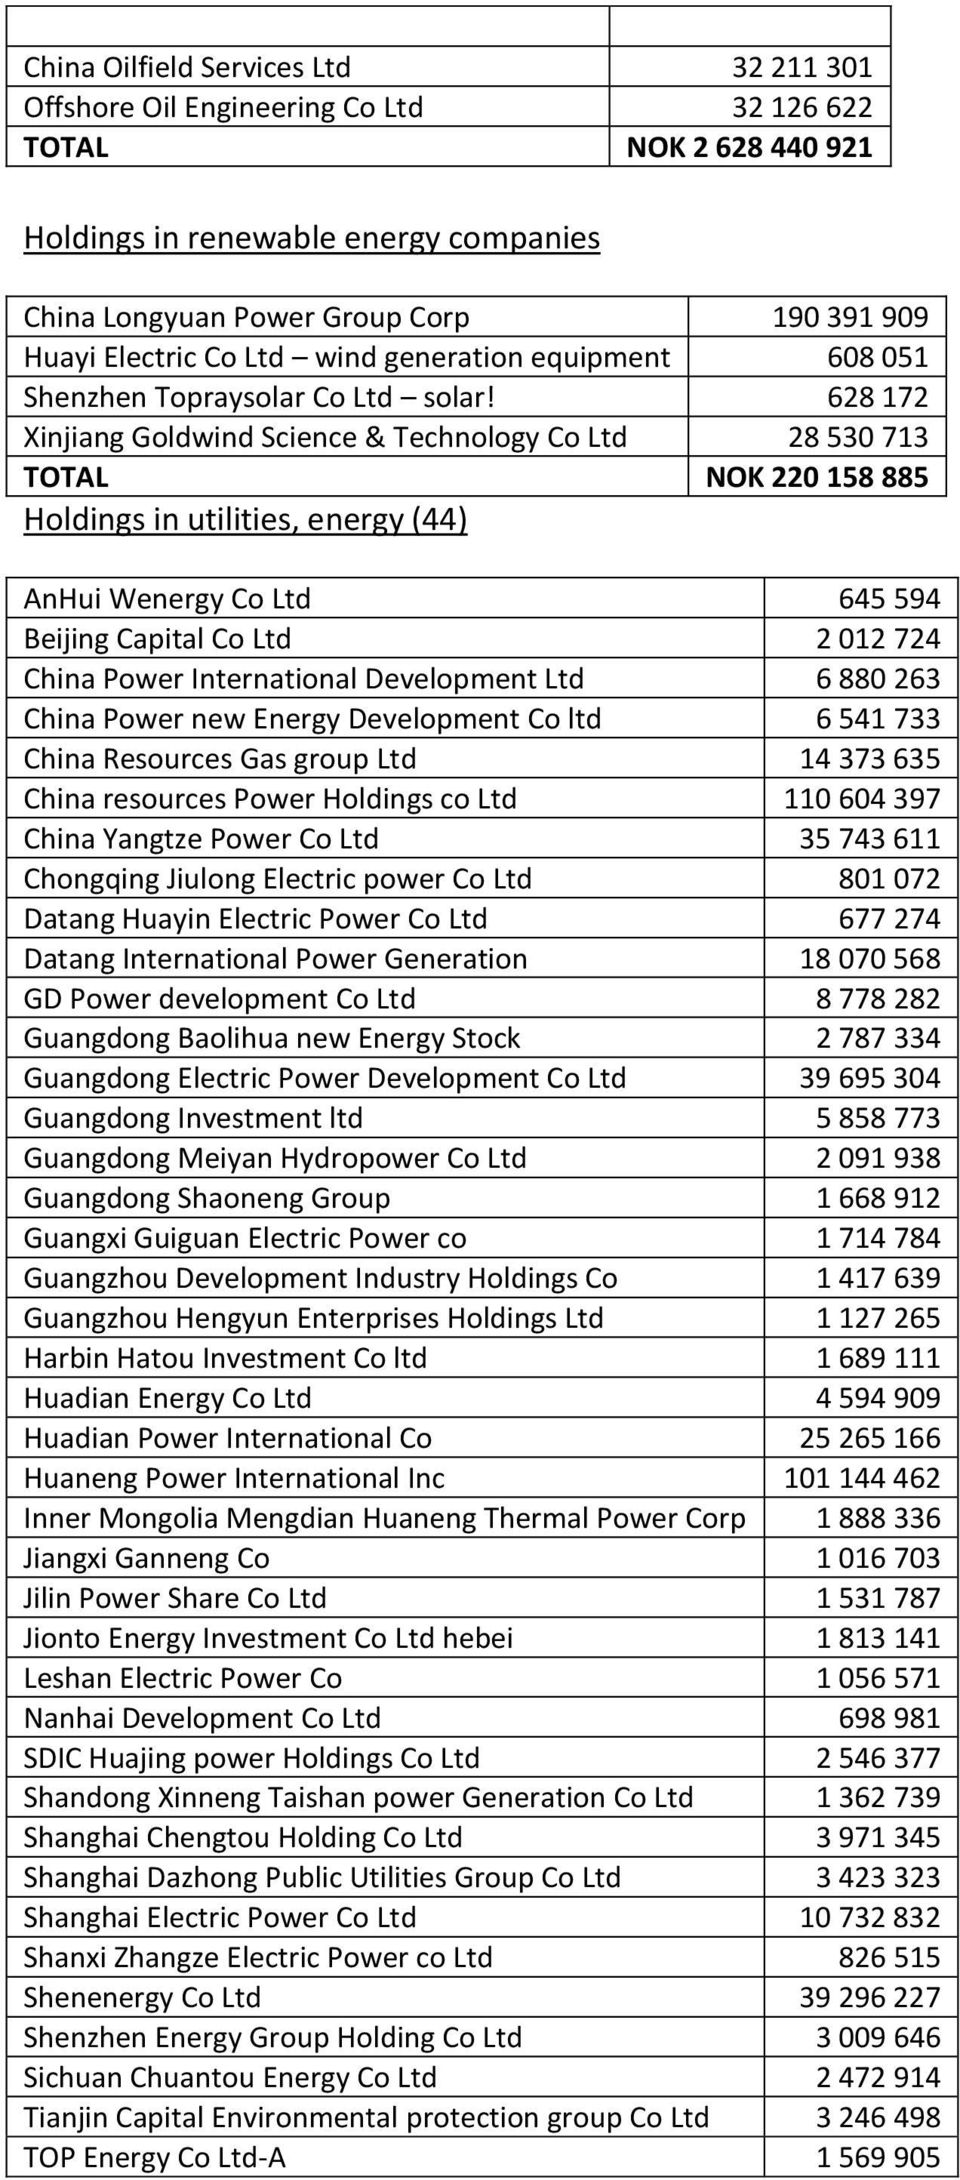 628 172 Xinjiang Goldwind Science & Technology Co Ltd 28 530 713 TOTAL NOK 220 158 885 Holdings in utilities, energy (44) AnHui Wenergy Co Ltd 645 594 Beijing Capital Co Ltd 2 012 724 China Power